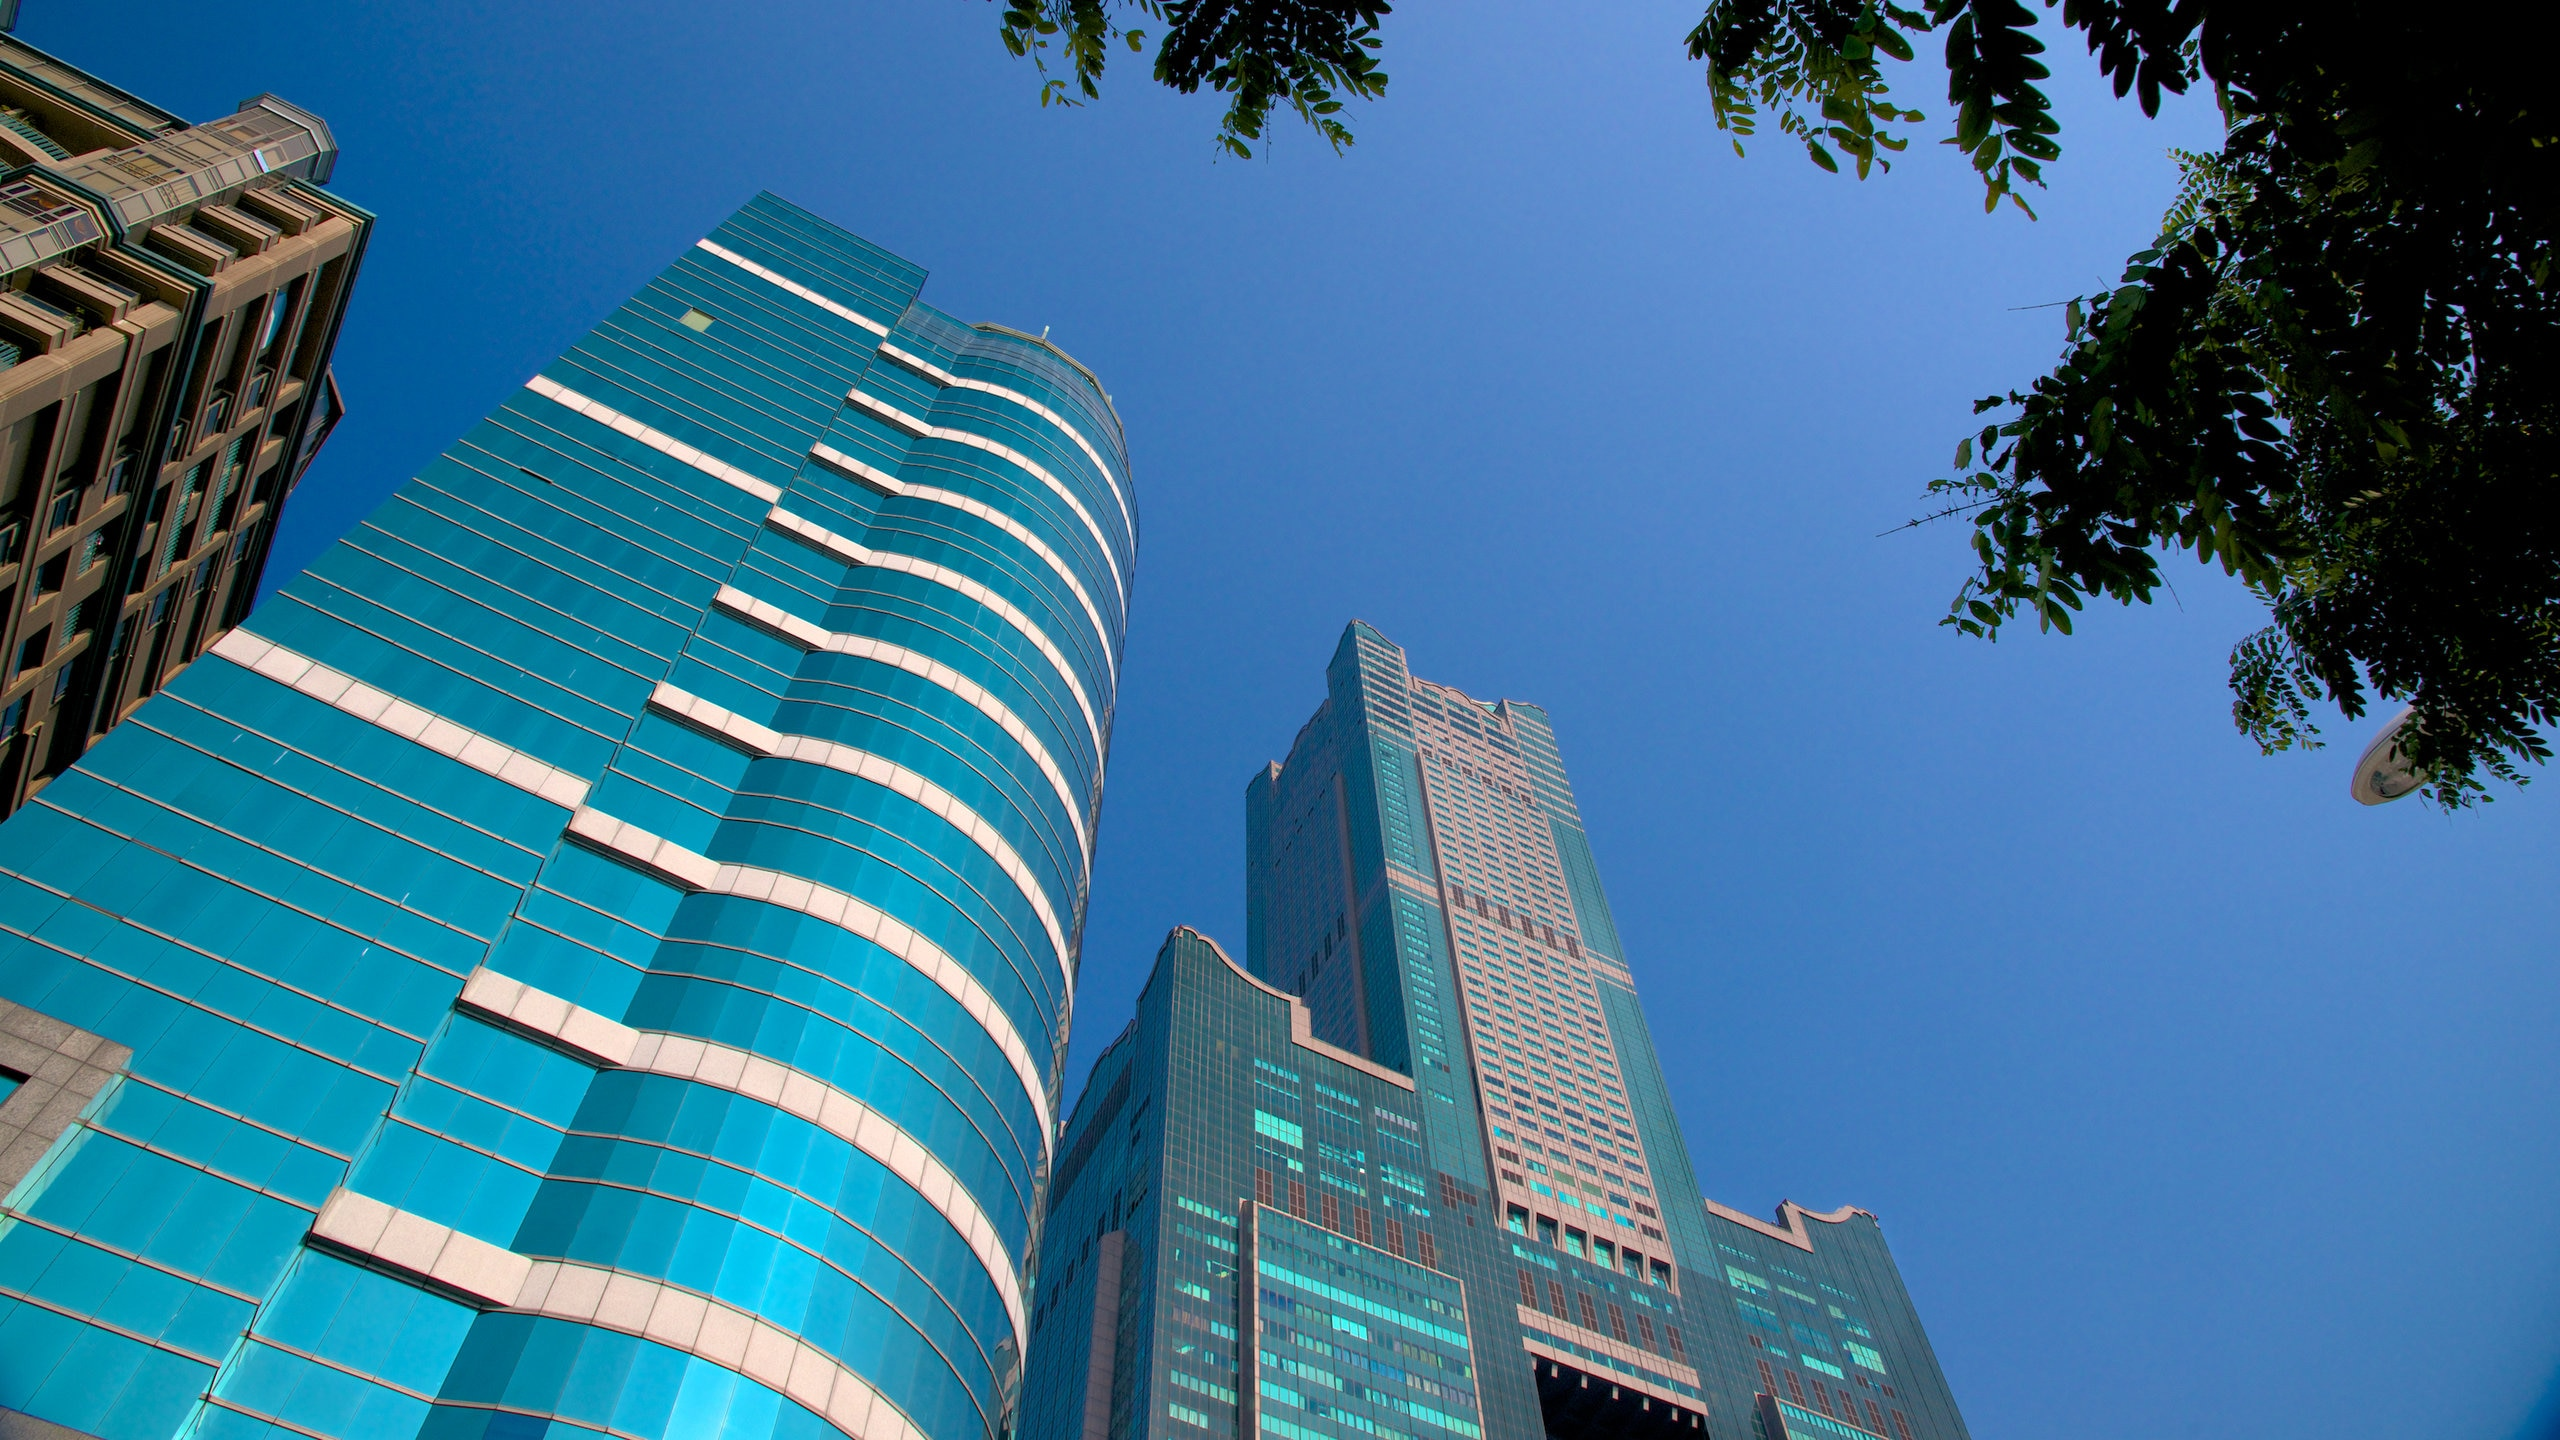 Gaze at the panoramic views of Love River, Lotus Pond and the rest of the city in this skyscraper that is home to large department stores and a hotel.